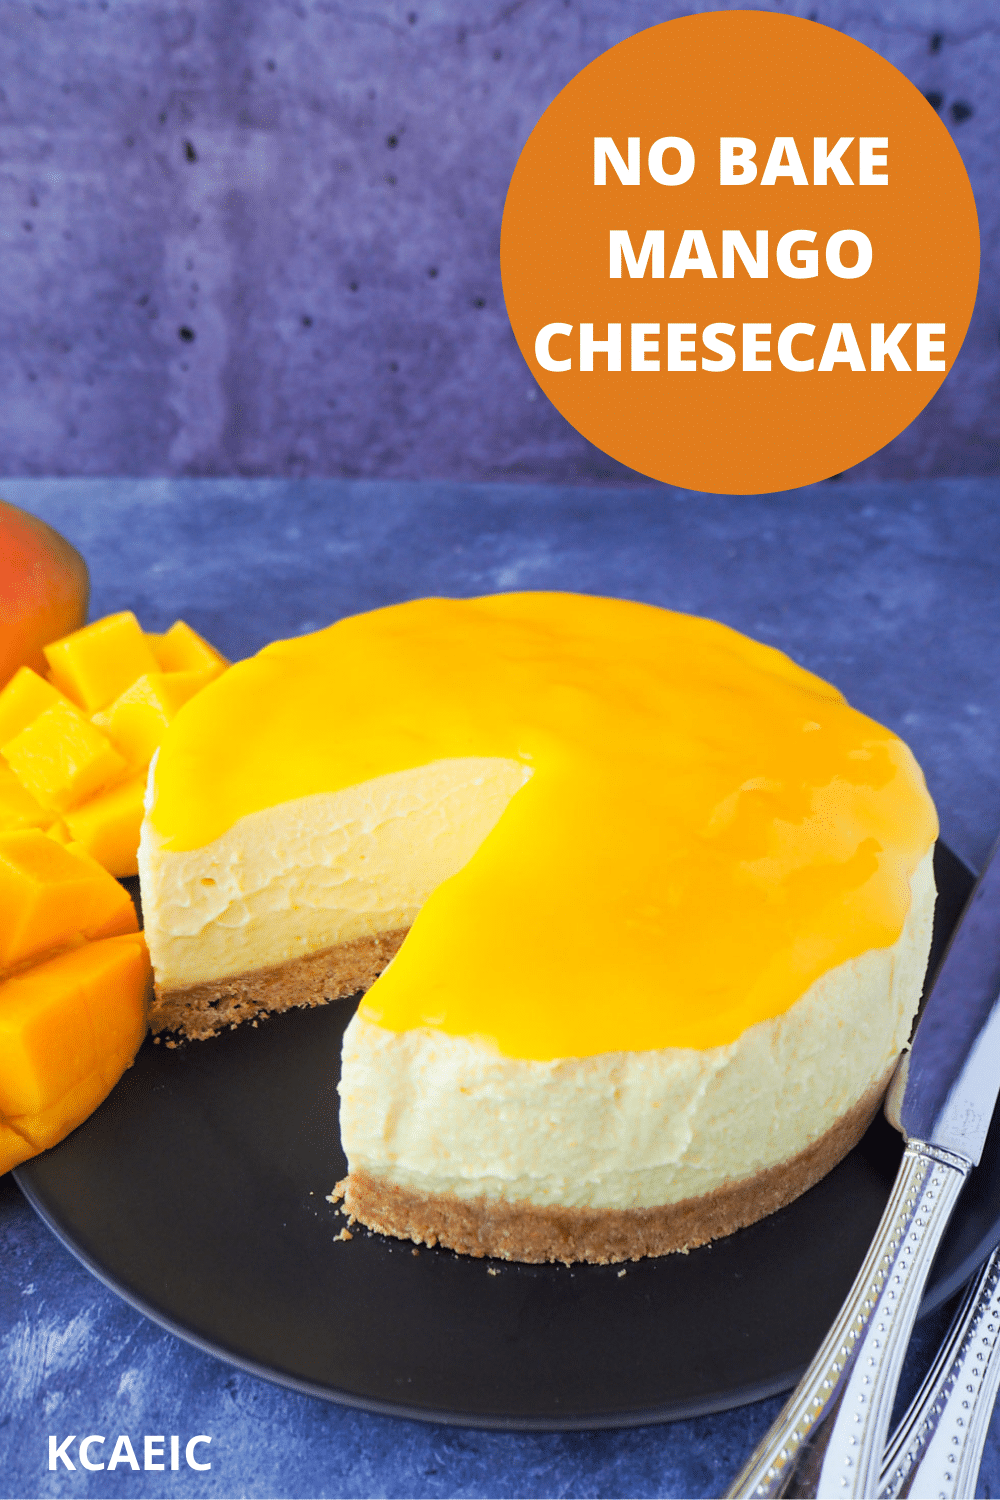 No bake mango cheesecake with a single slice cut out, mango coulis, fresh mango and silver serving wear, with text overlay, no bake mango cheesecake and KCAEIC.